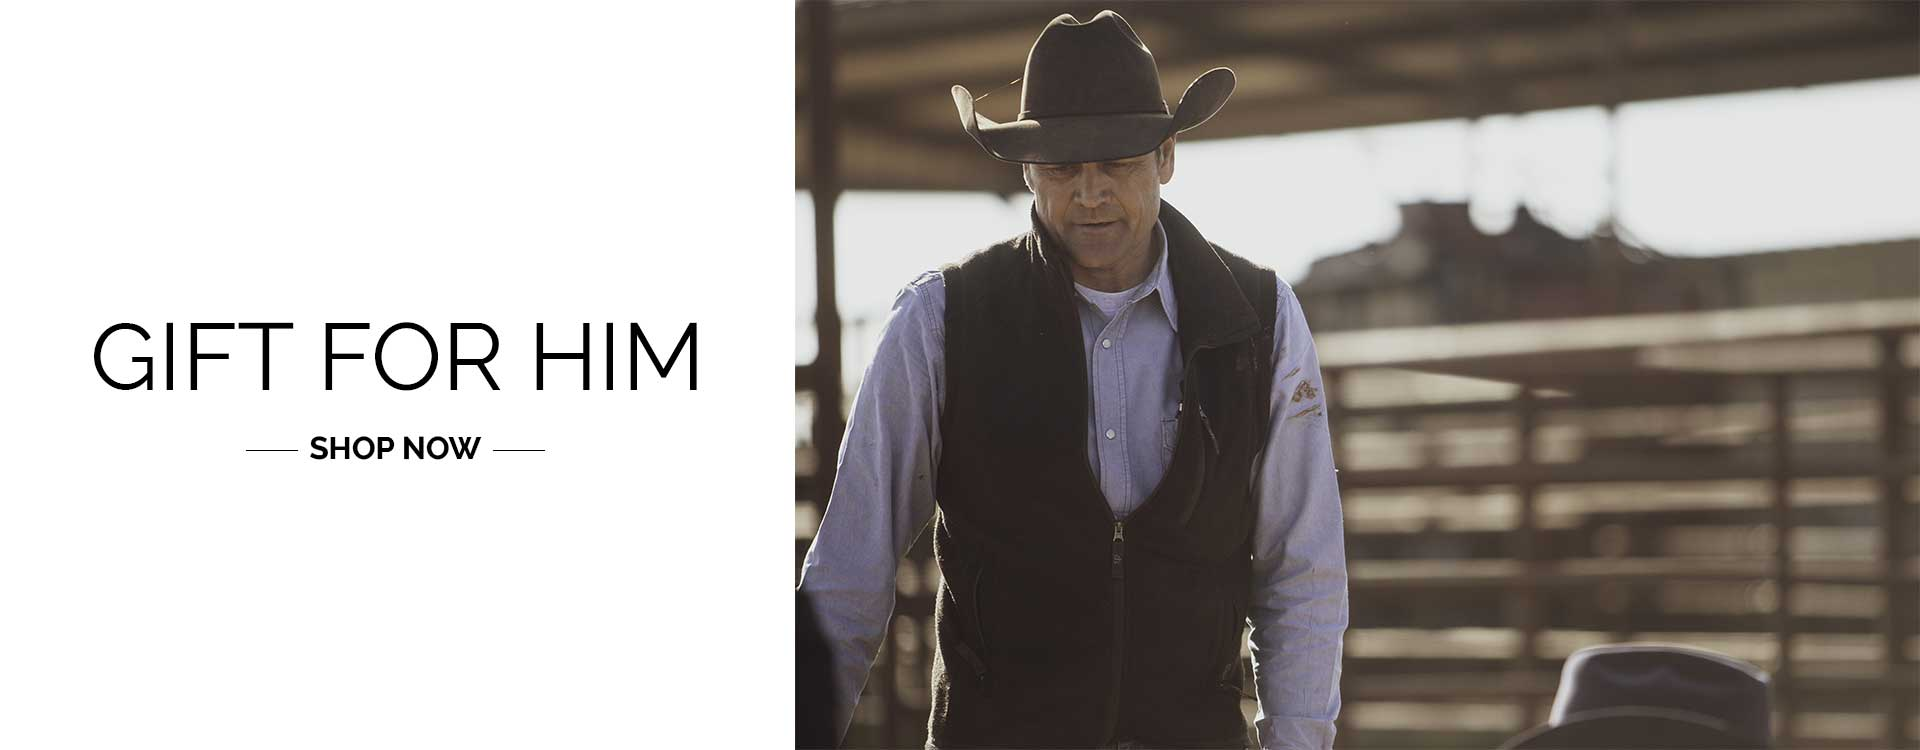 Gifts for Him Shop Now - 2020 STS Ranchwear Black Friday Cyber Monday Sales